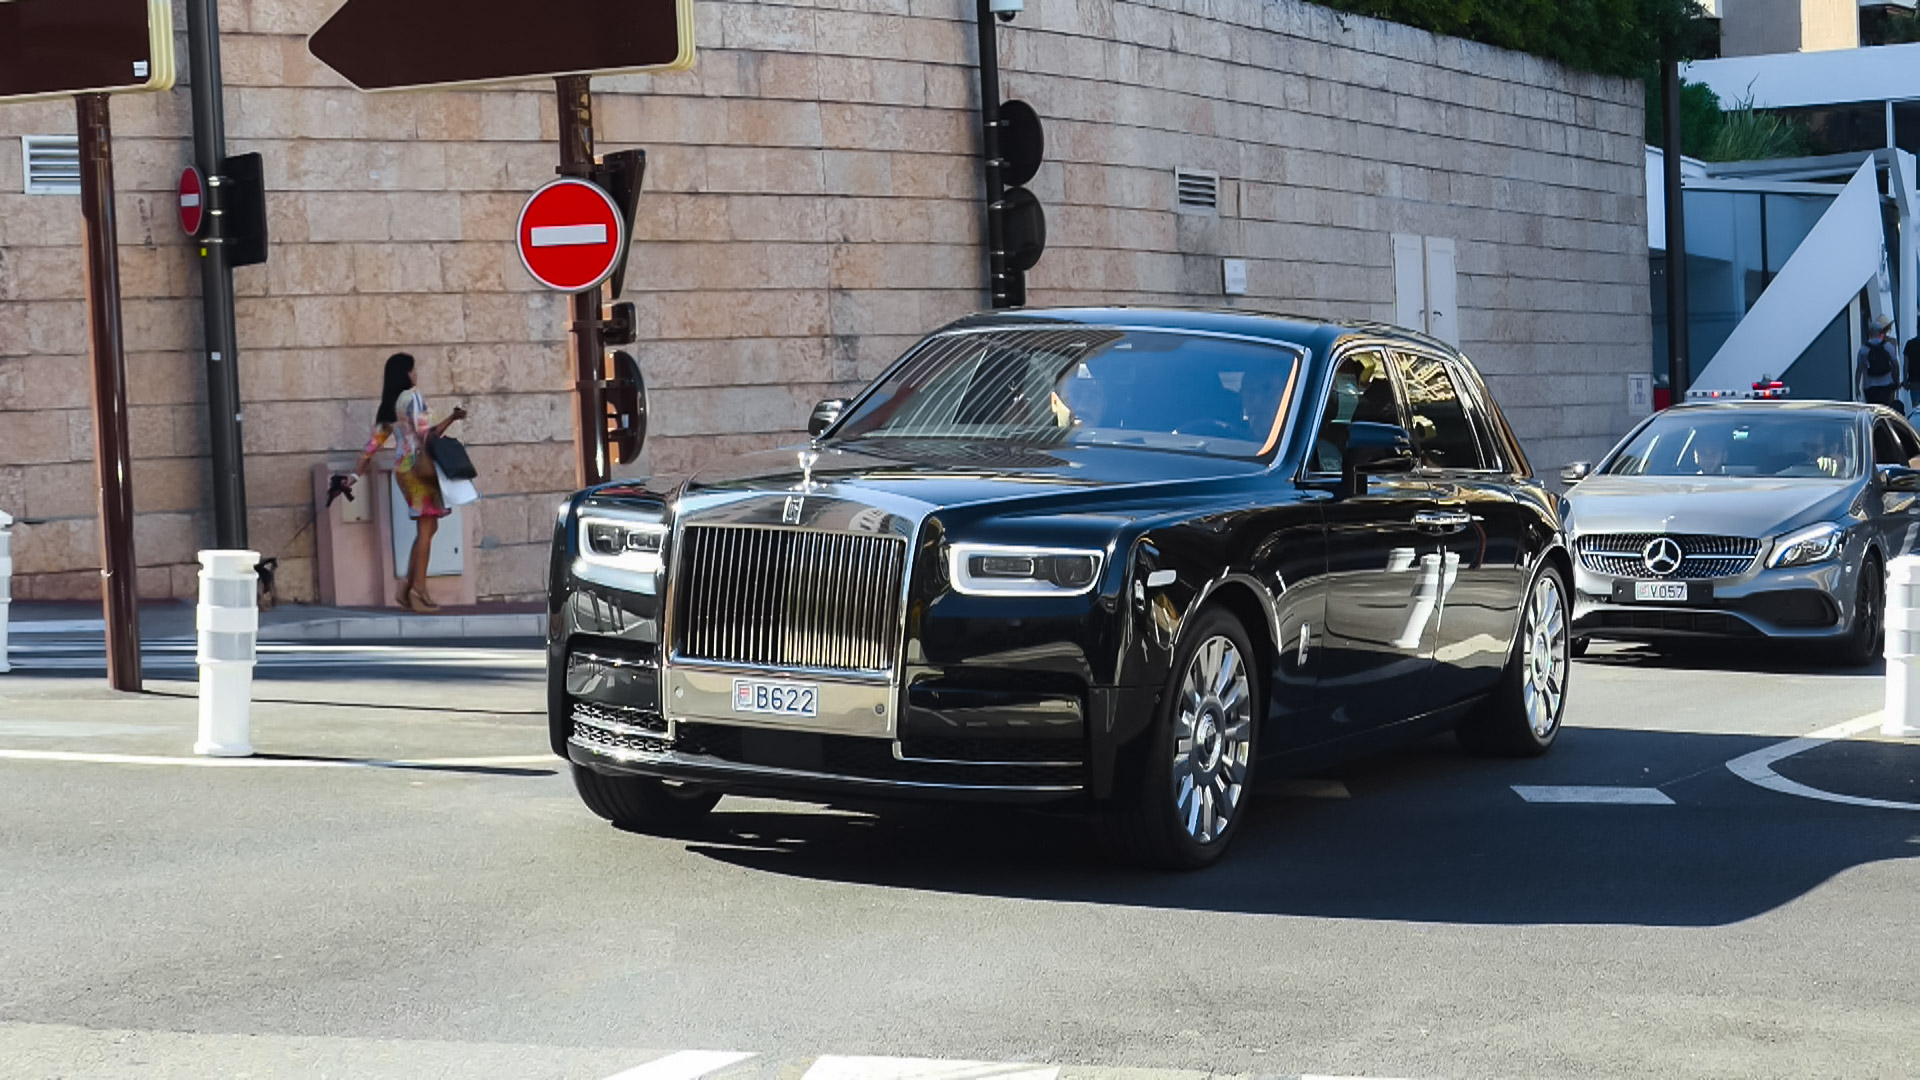 Rolls Royce Phantom - B622 (MC)